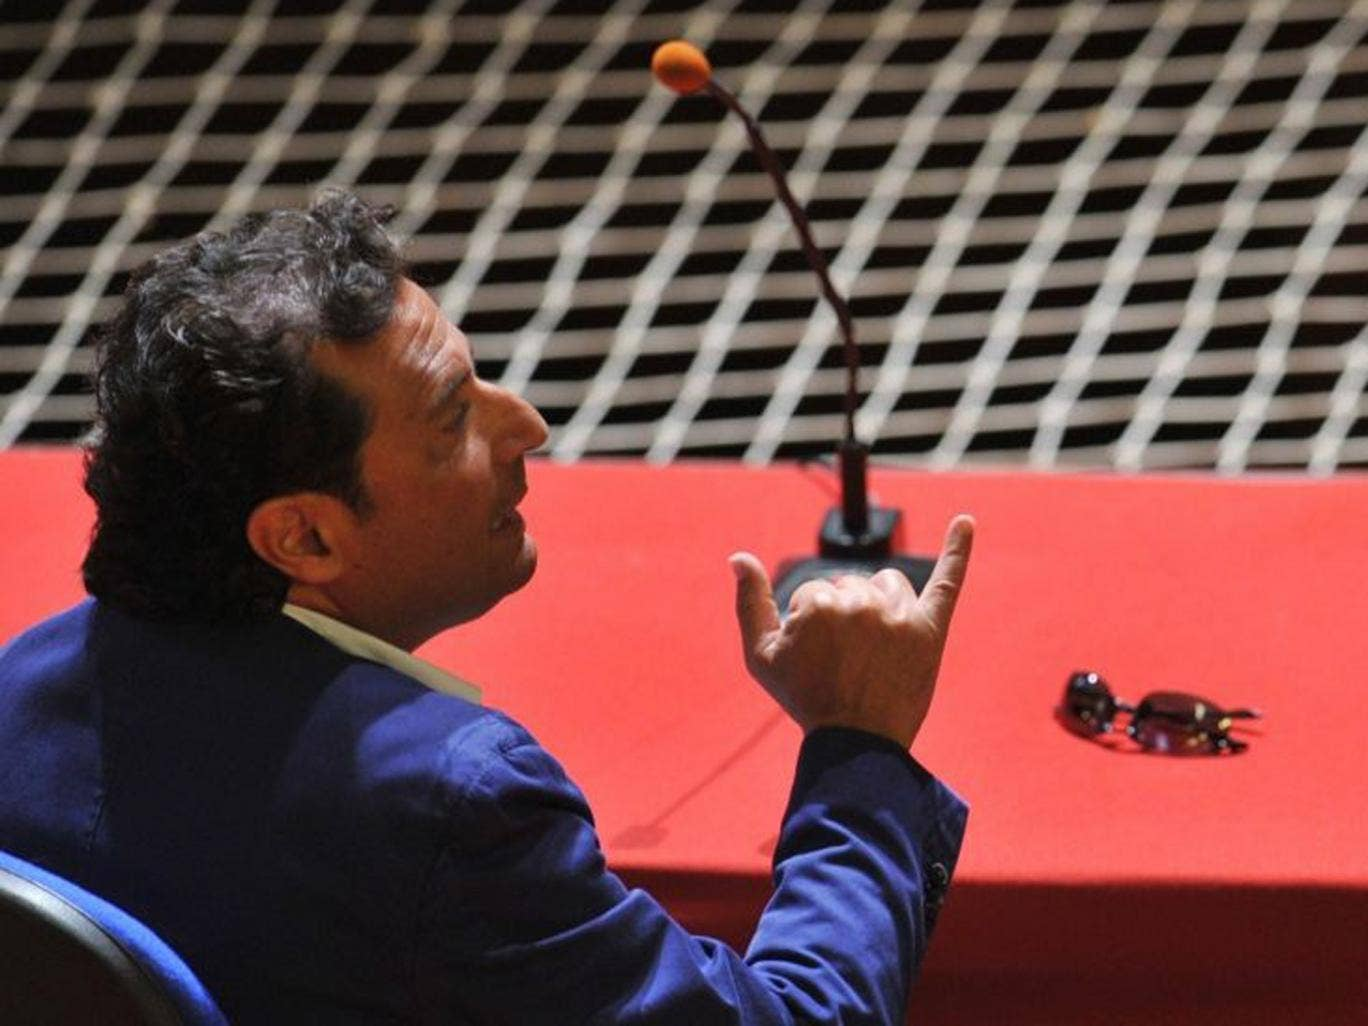 The captain of the ill-fated Costa Concordia cruise ship, Francesco Schettino seated for his trial in Grosseto, Tuscany. He is charged with multiple manslaughter over the 32 people who lost their lives and is accused of abandoning the ship while terrified